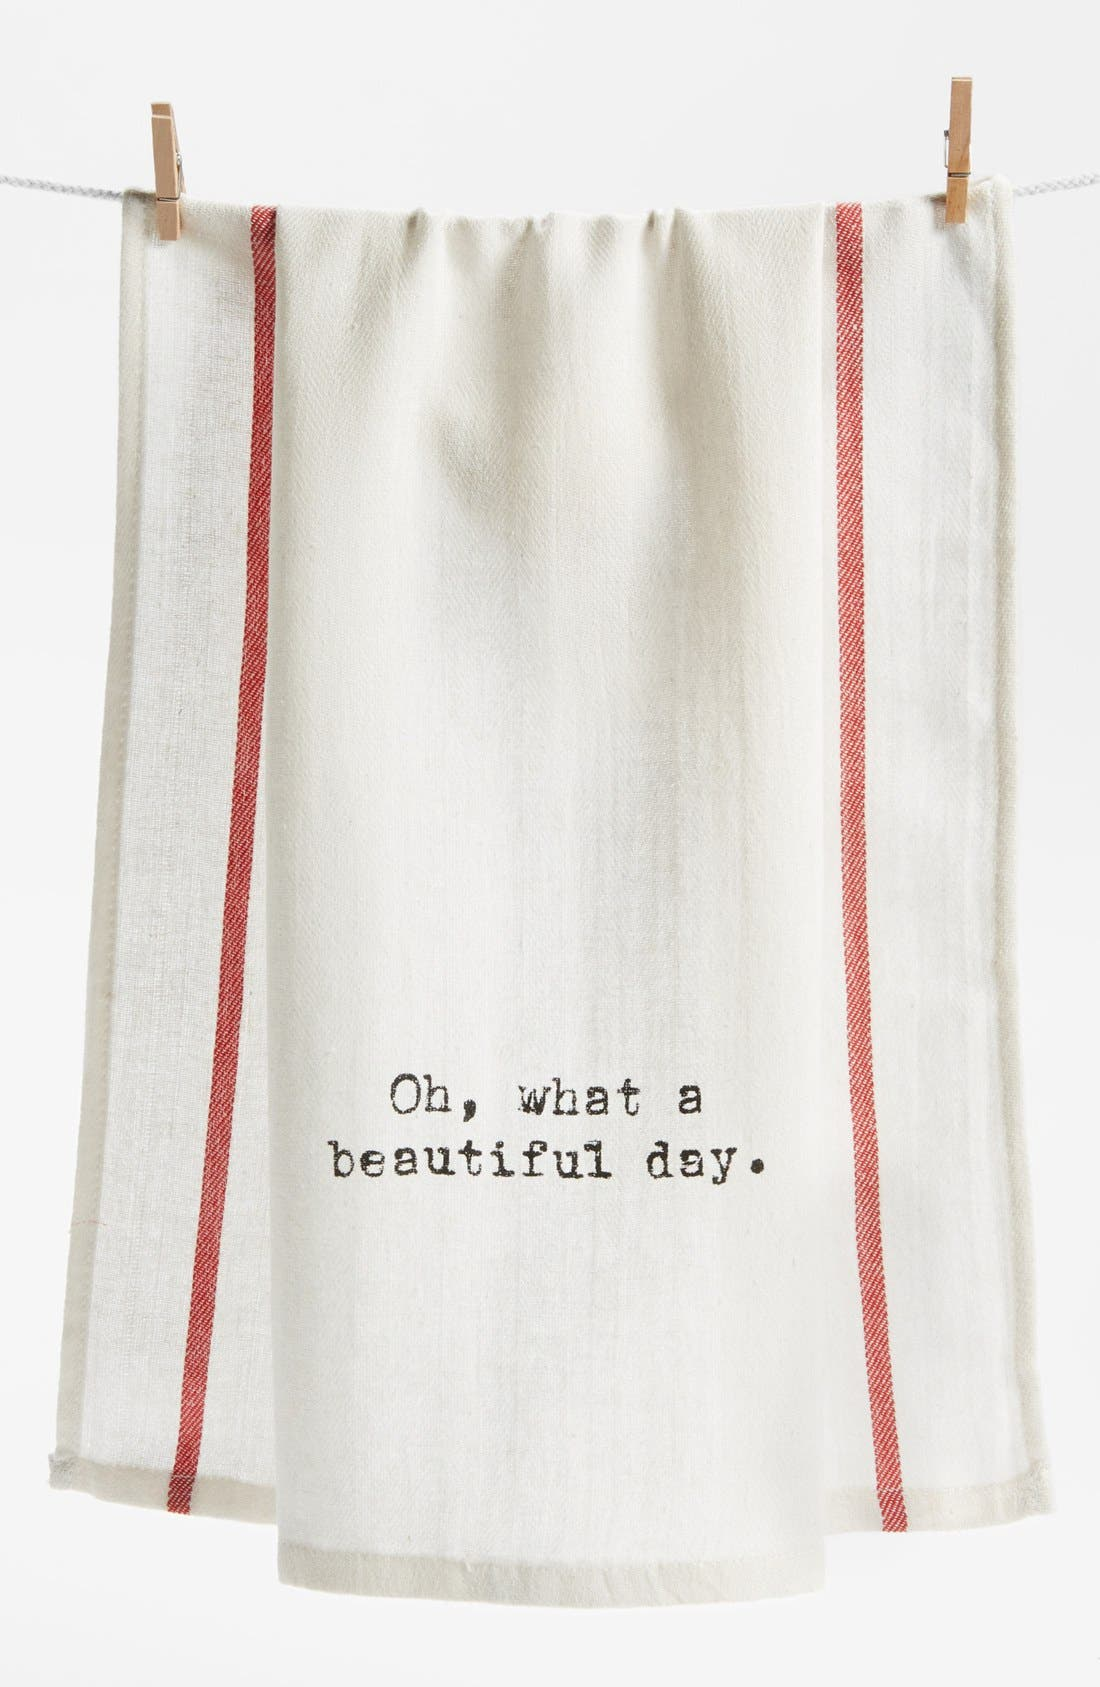 Alternate Image 1 Selected - Second Nature by Hand 'Oh What a Beautiful Day' Towel